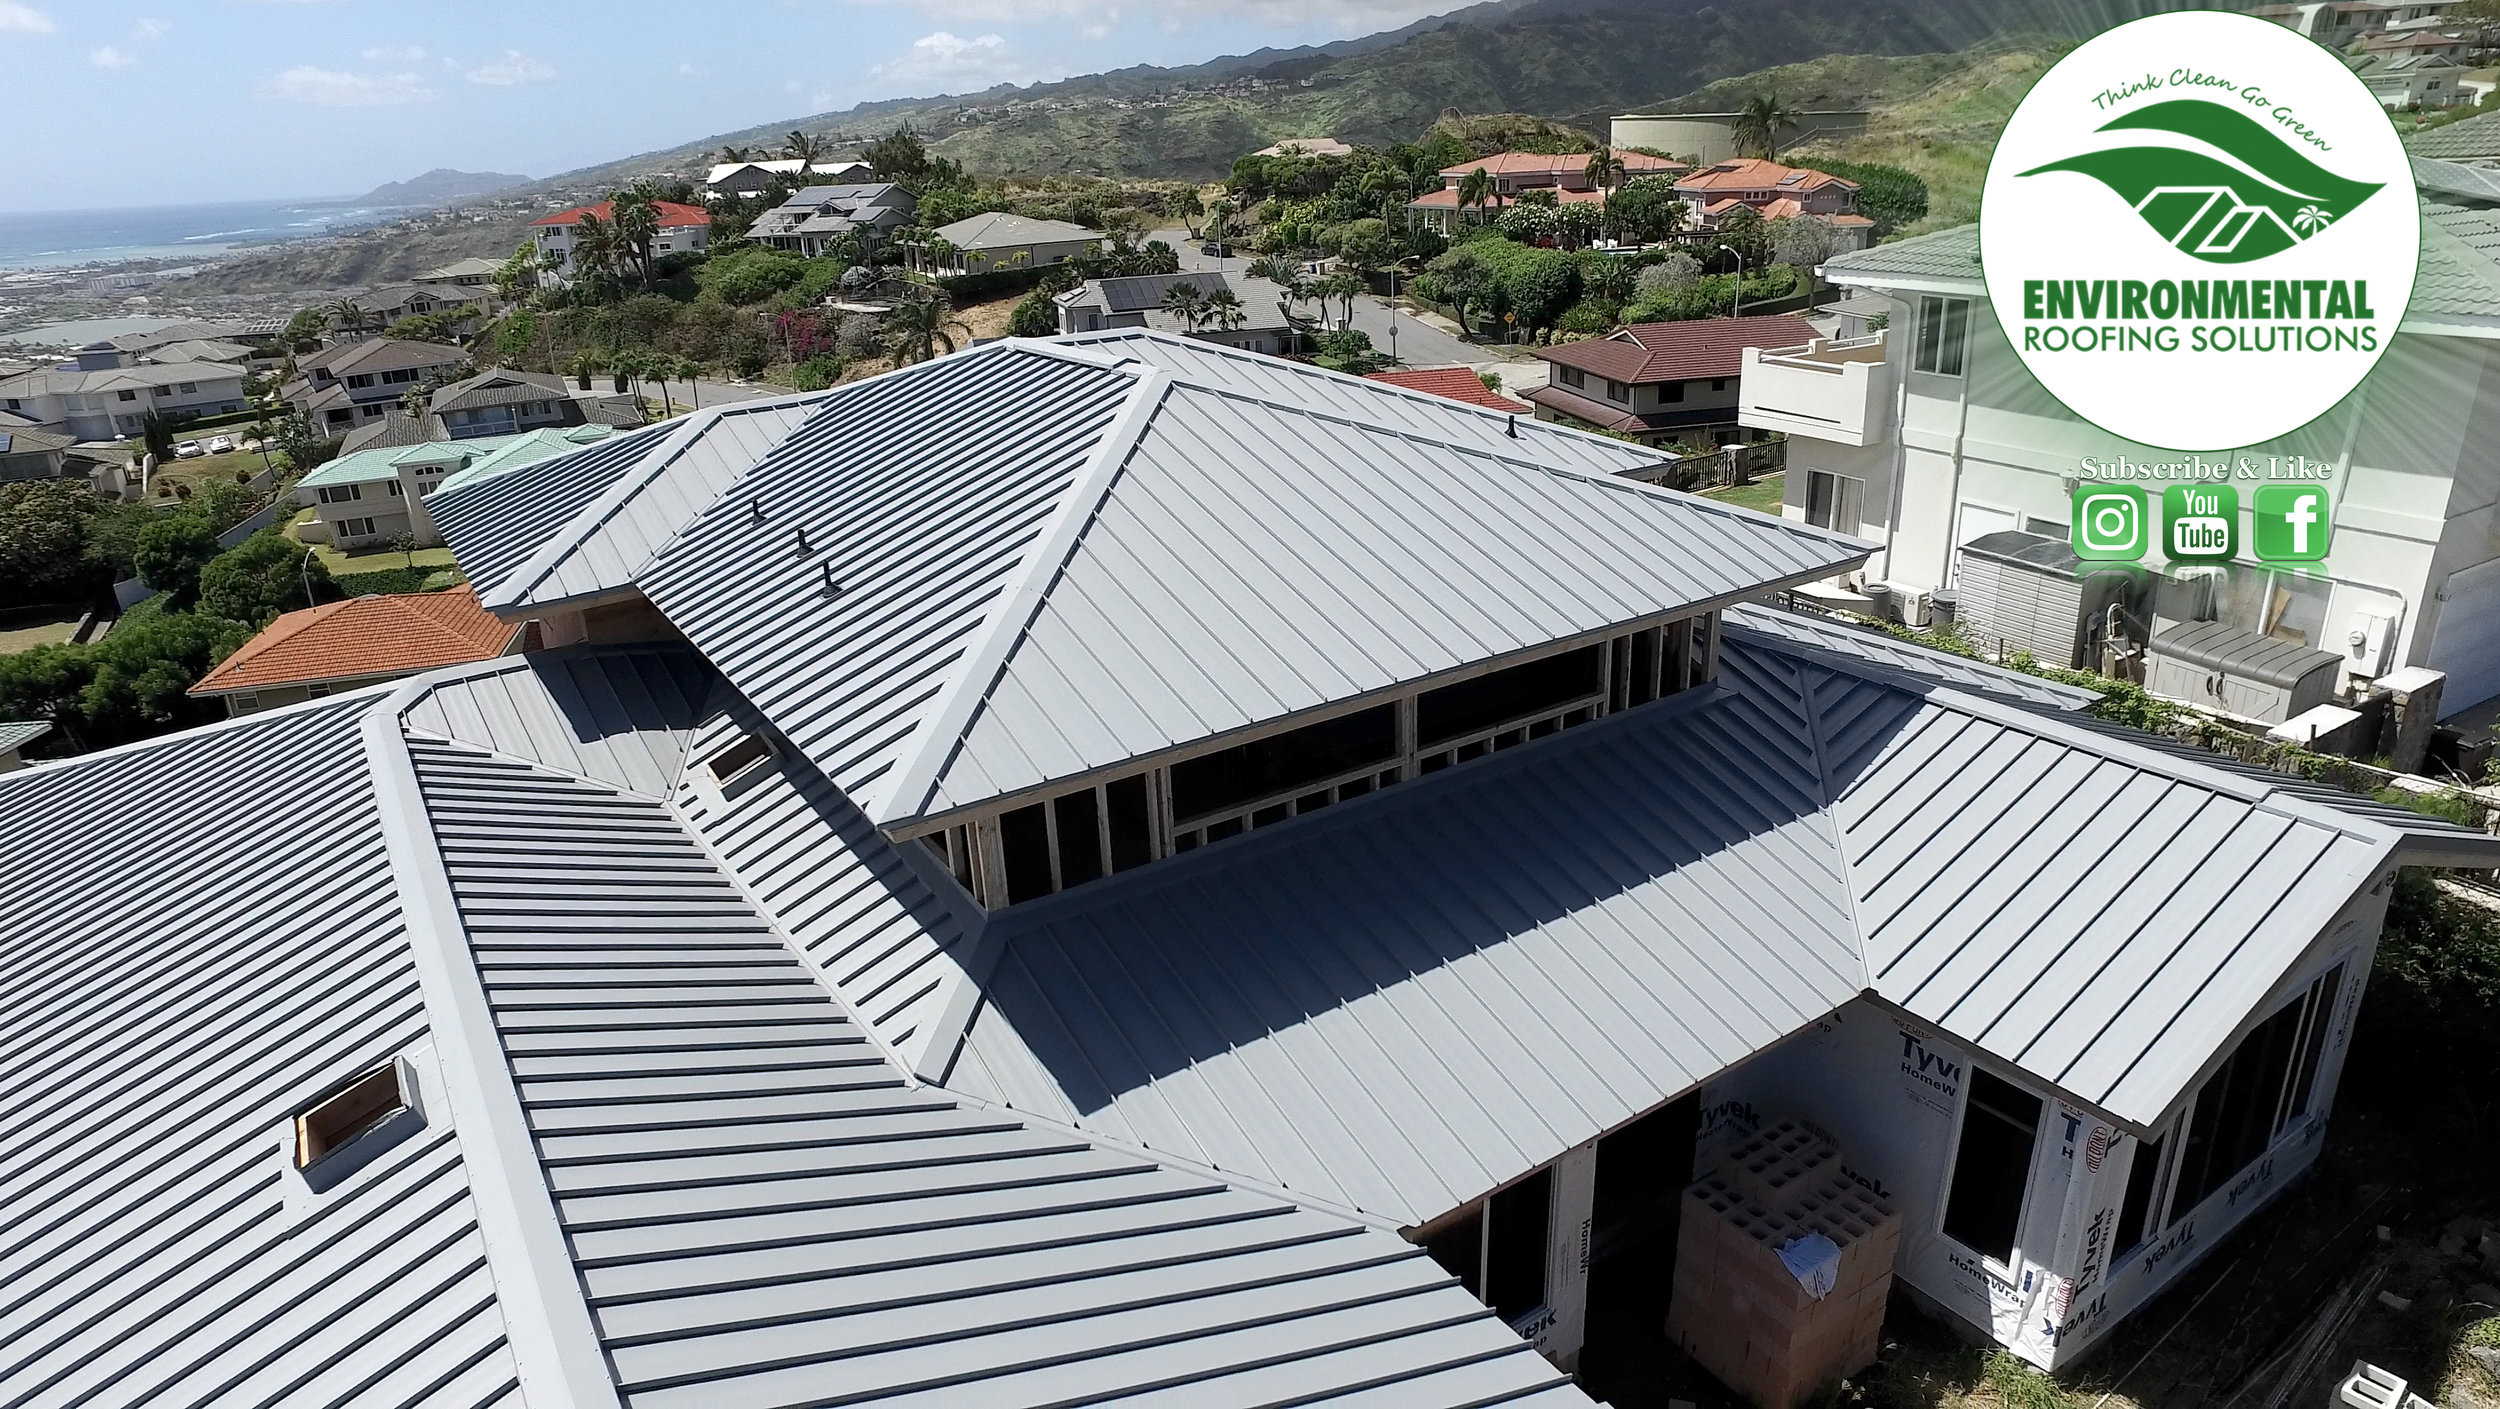 STANDING SEAMINSTALL BY ENVIRONMENTAL ROOFING SOLUTIONS